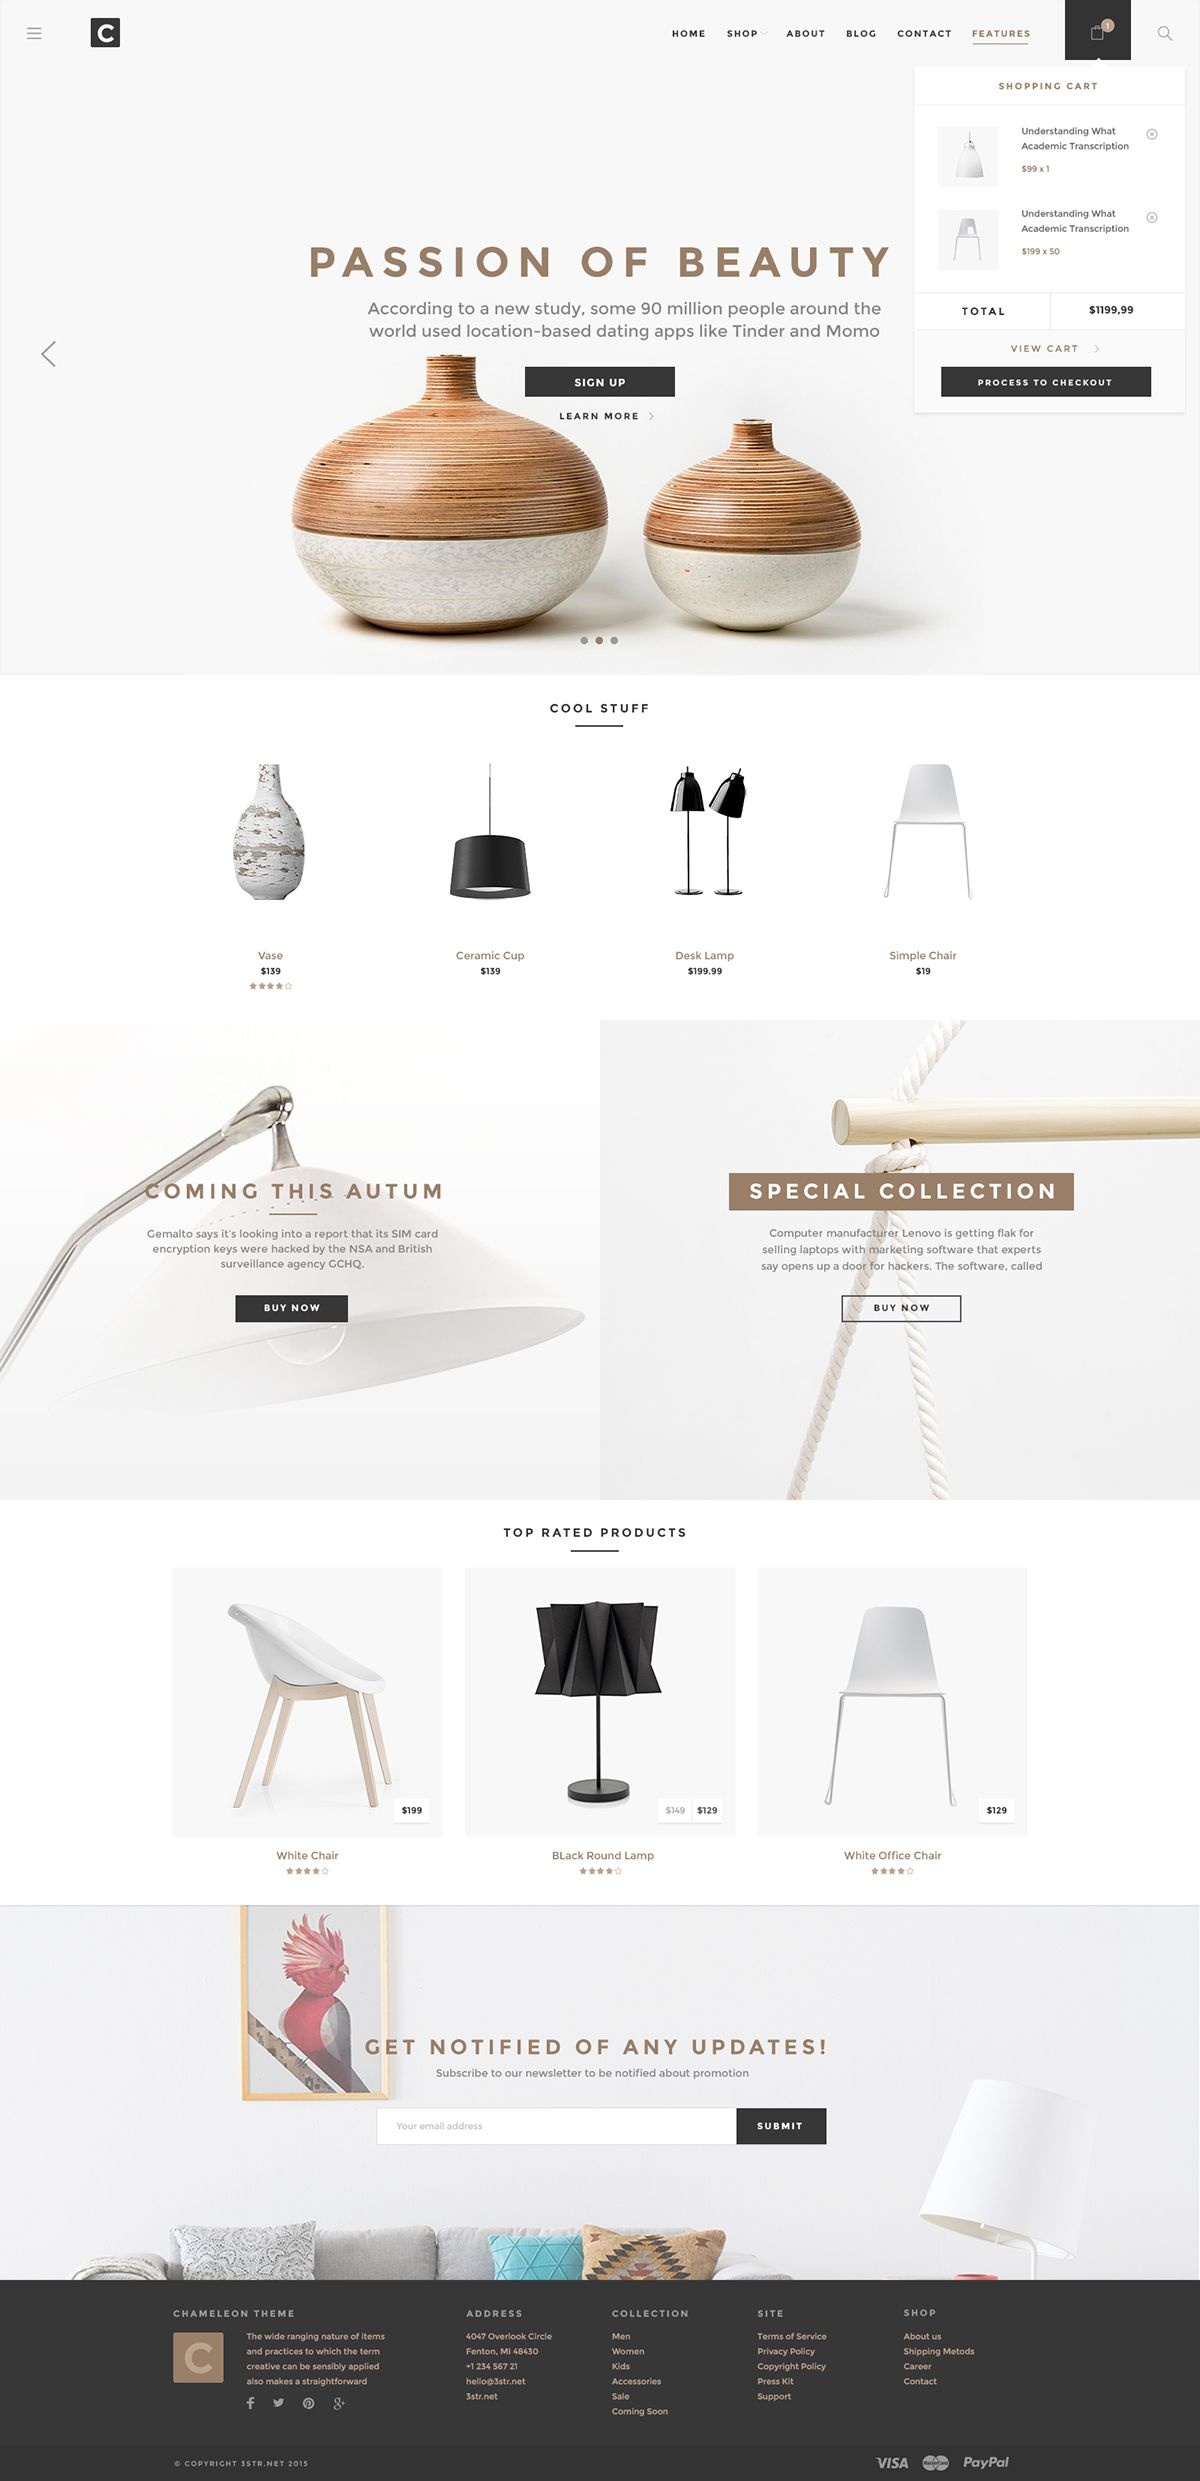 Chameleon Shop PSD Template is an unique eCommerce PSD template for on  online shopping store. Chameleon Shop PSD Template is an unique eCommerce PSD template